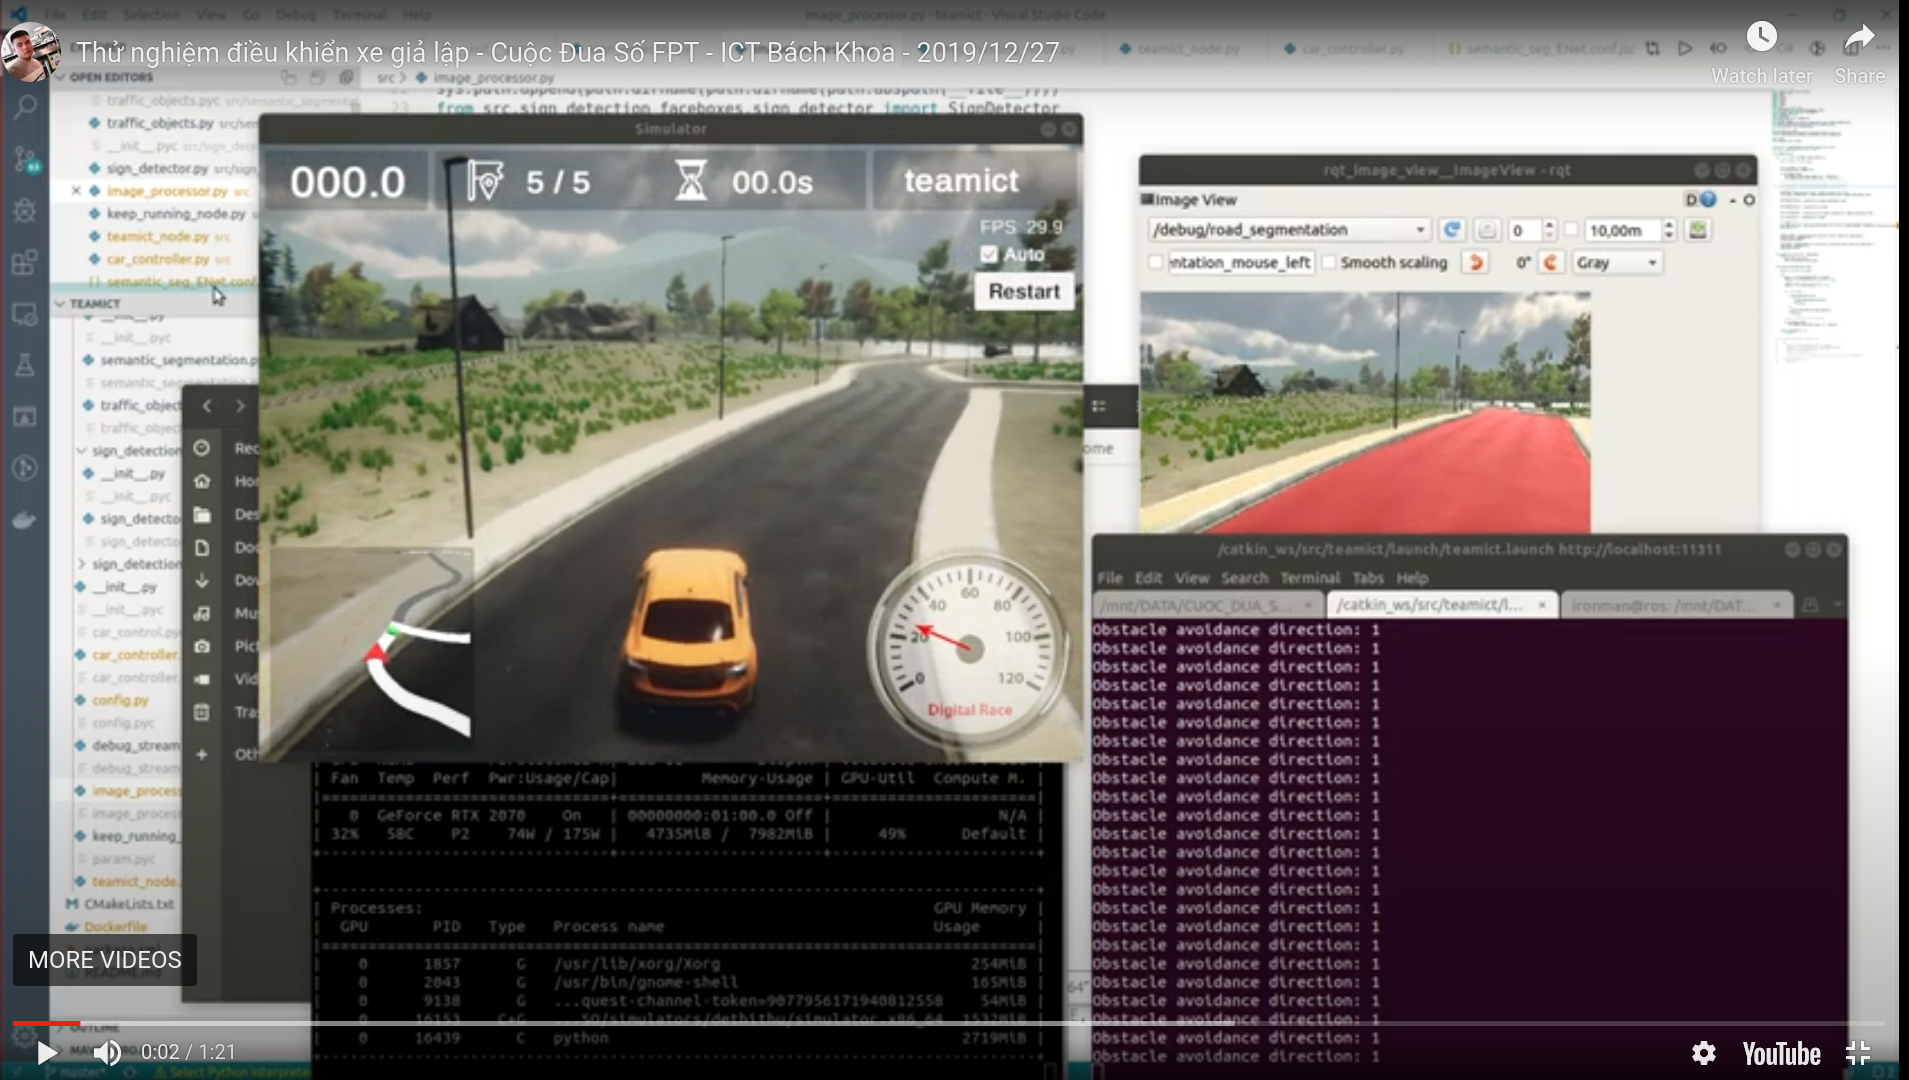 SELF-DRIVING CAR - ROS NODE TO CONTROL SIMULATION CAR (GROUP PROJECT)